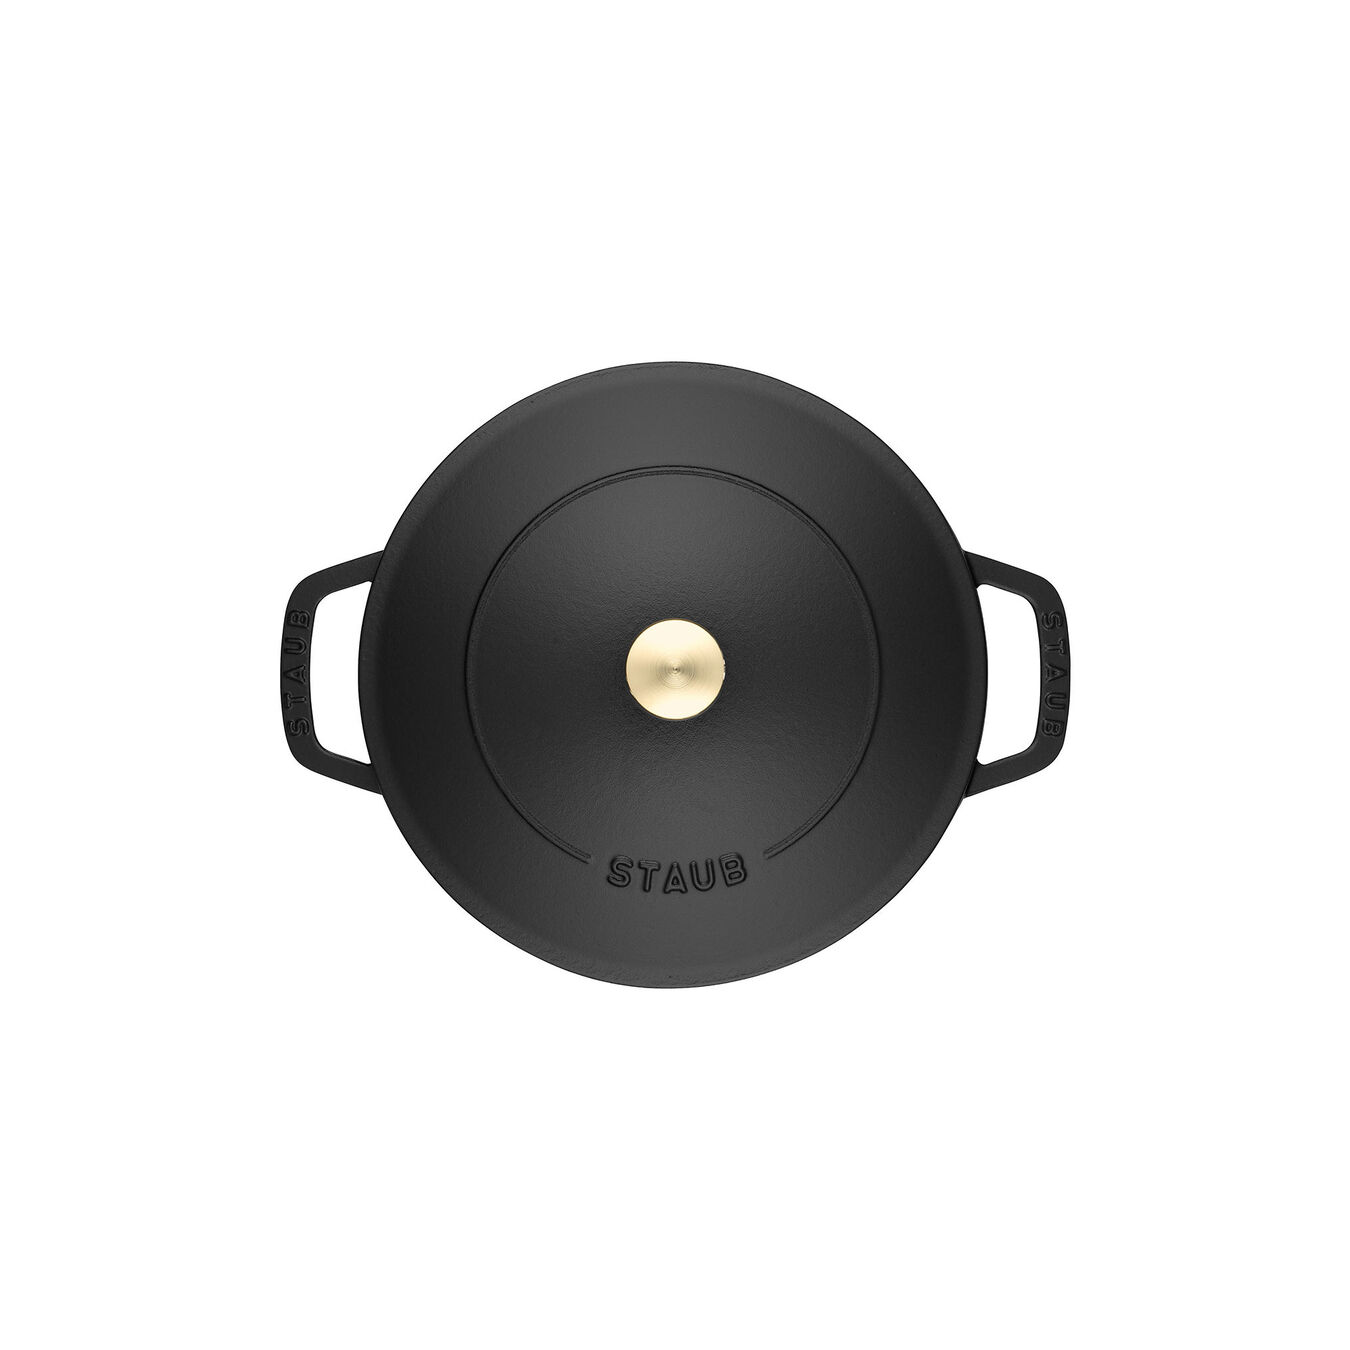 3.75 l Cast iron round Saute pan Chistera, Black,,large 5